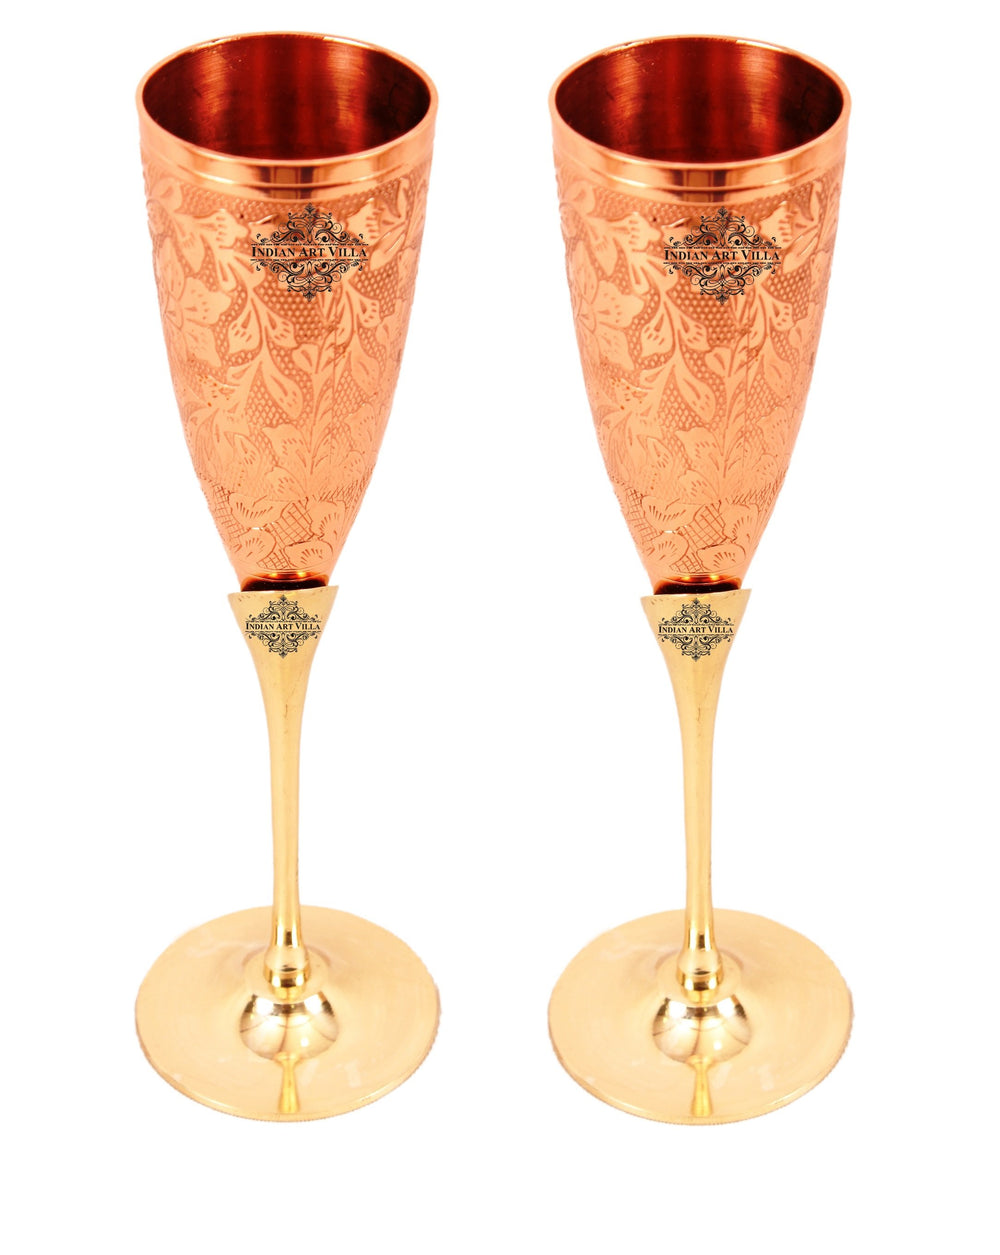 Handmade Copper Brass Champagne Glass 5 Oz